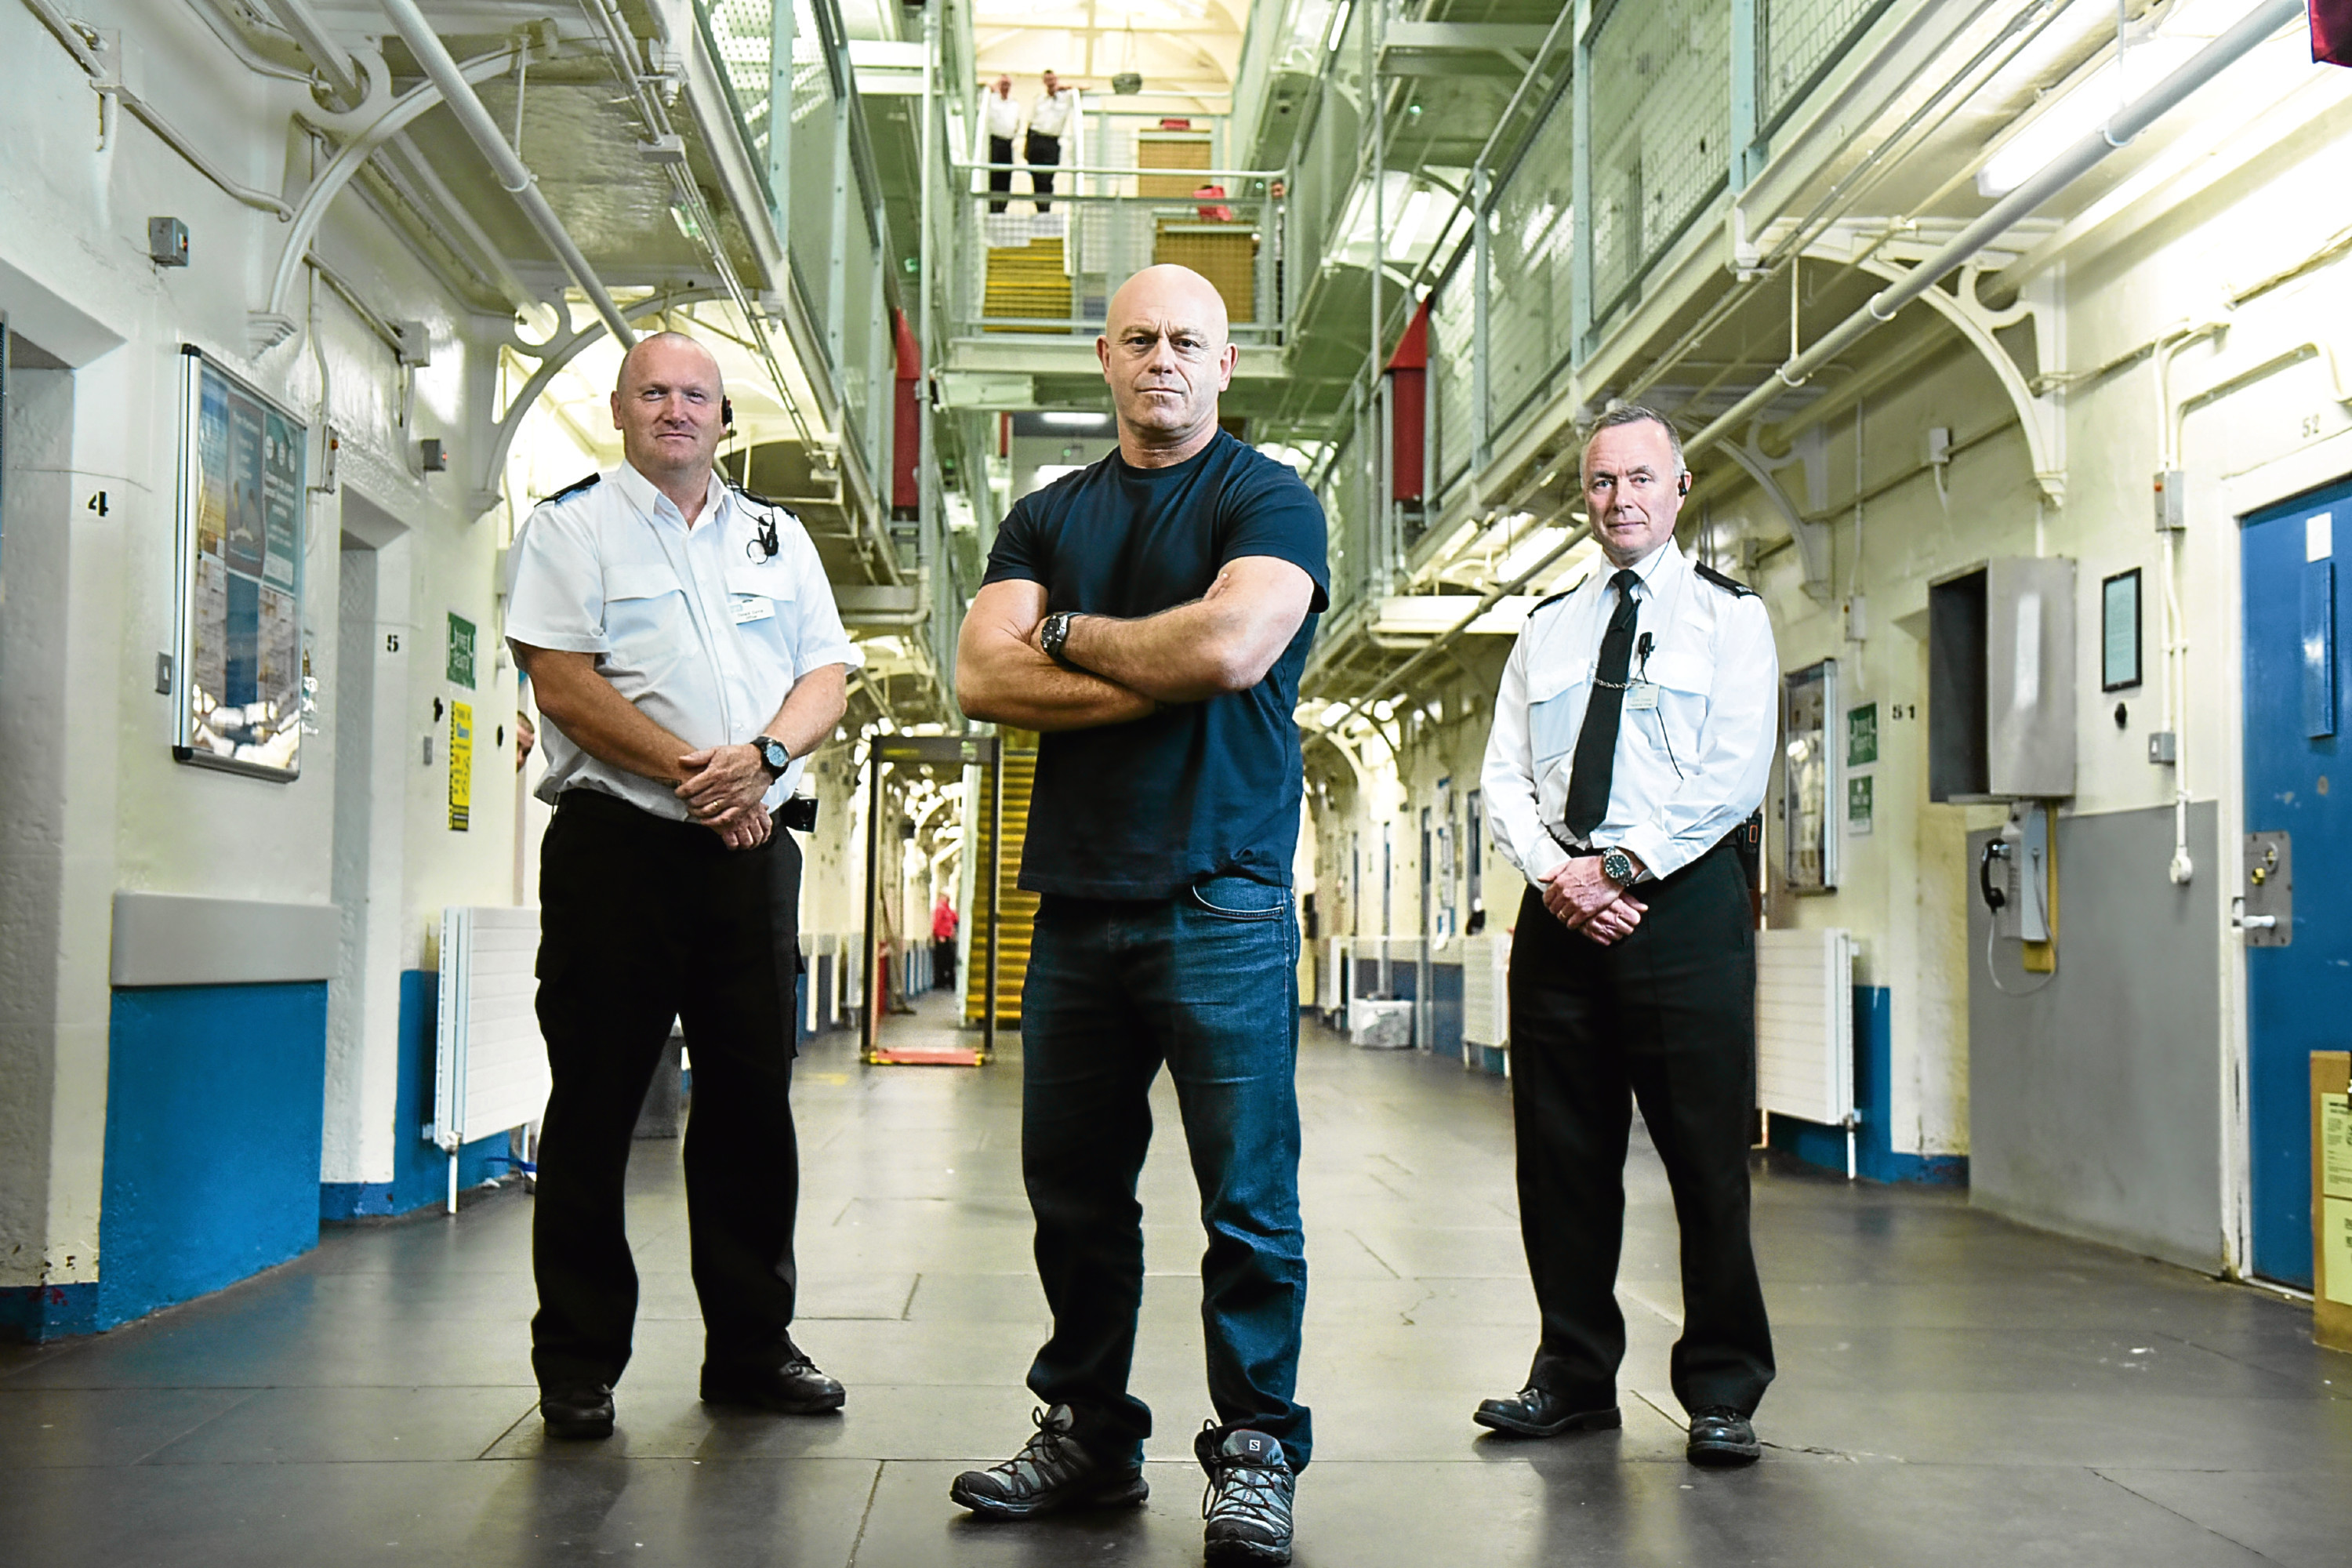 Ross Kemp (centre) flanked by two prison guards in Barlinnie Prison (ITV)